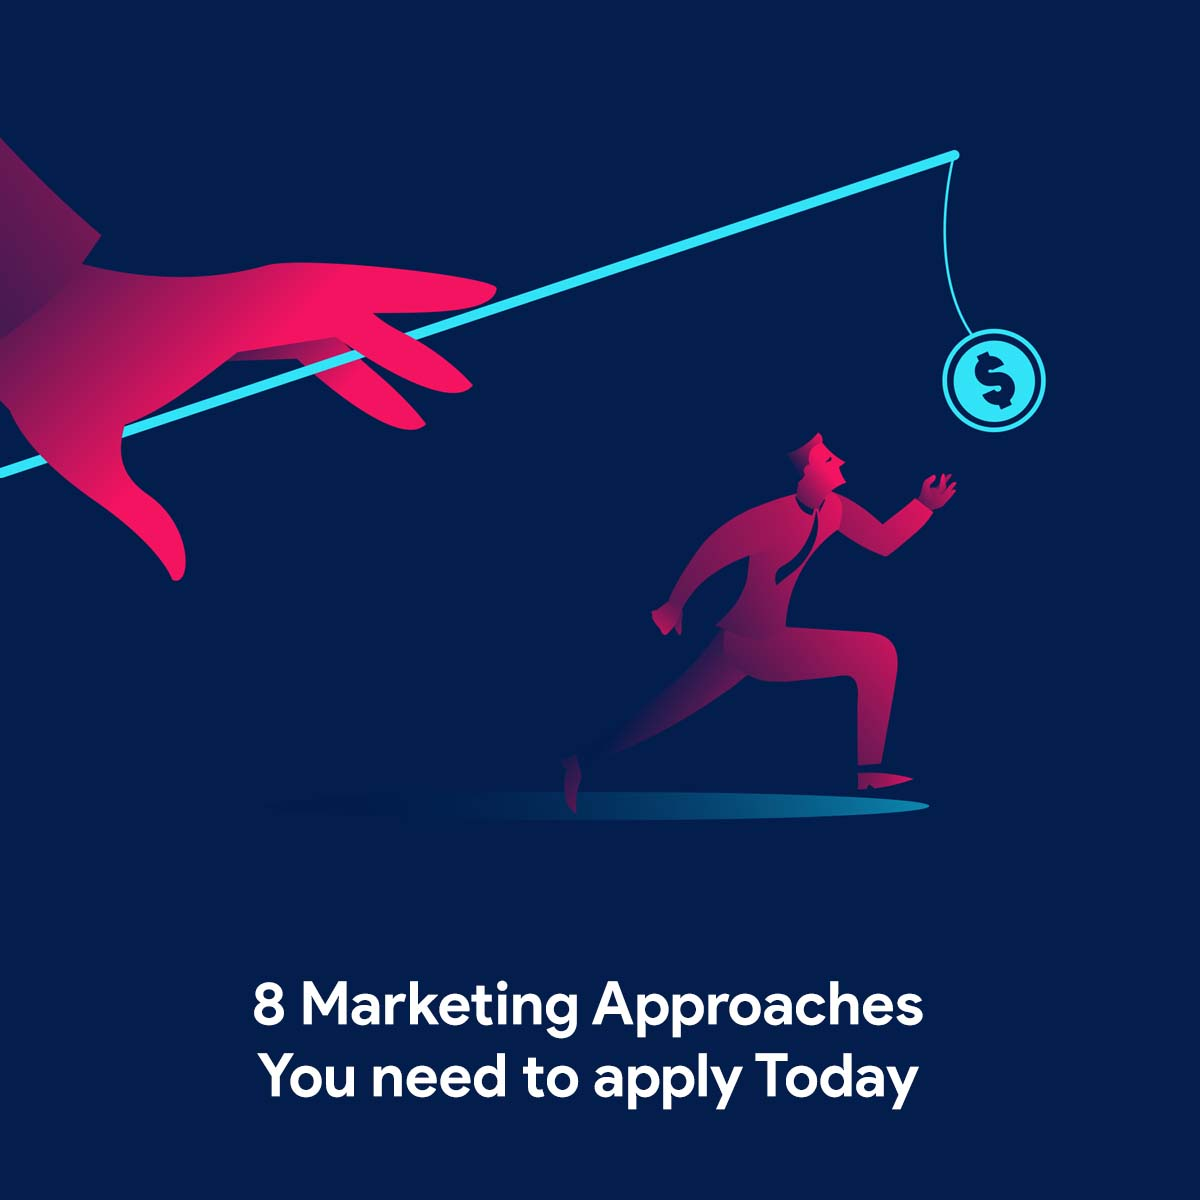 eBook - 8 Marketing Approaches You need to apply Today